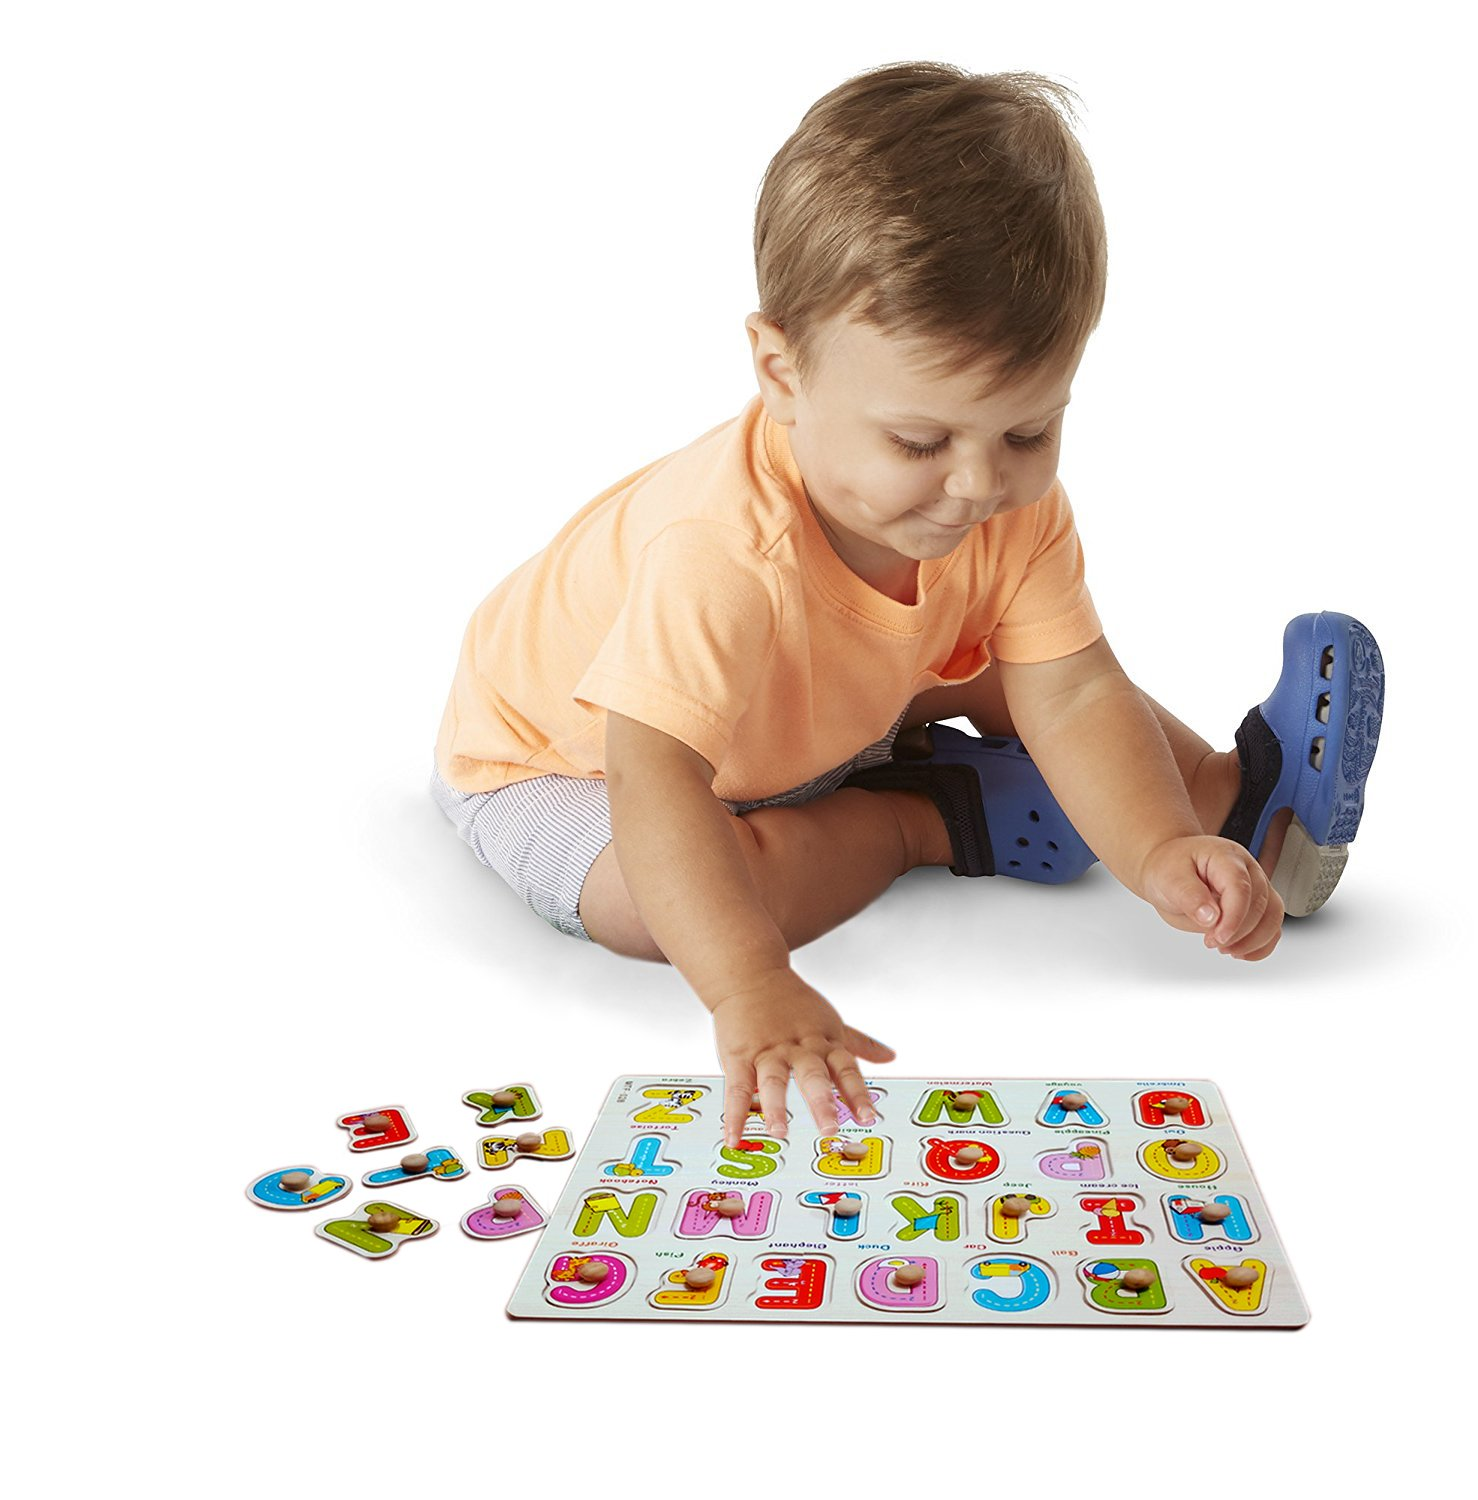 Toddler Puzzles Wooden Peg Puzzles for Toddlers 2 3 4 5 years old (Set of 3) - Numbers, Alphabet and Objects Puzzle by Wallxin by Wallxin (Image #6)